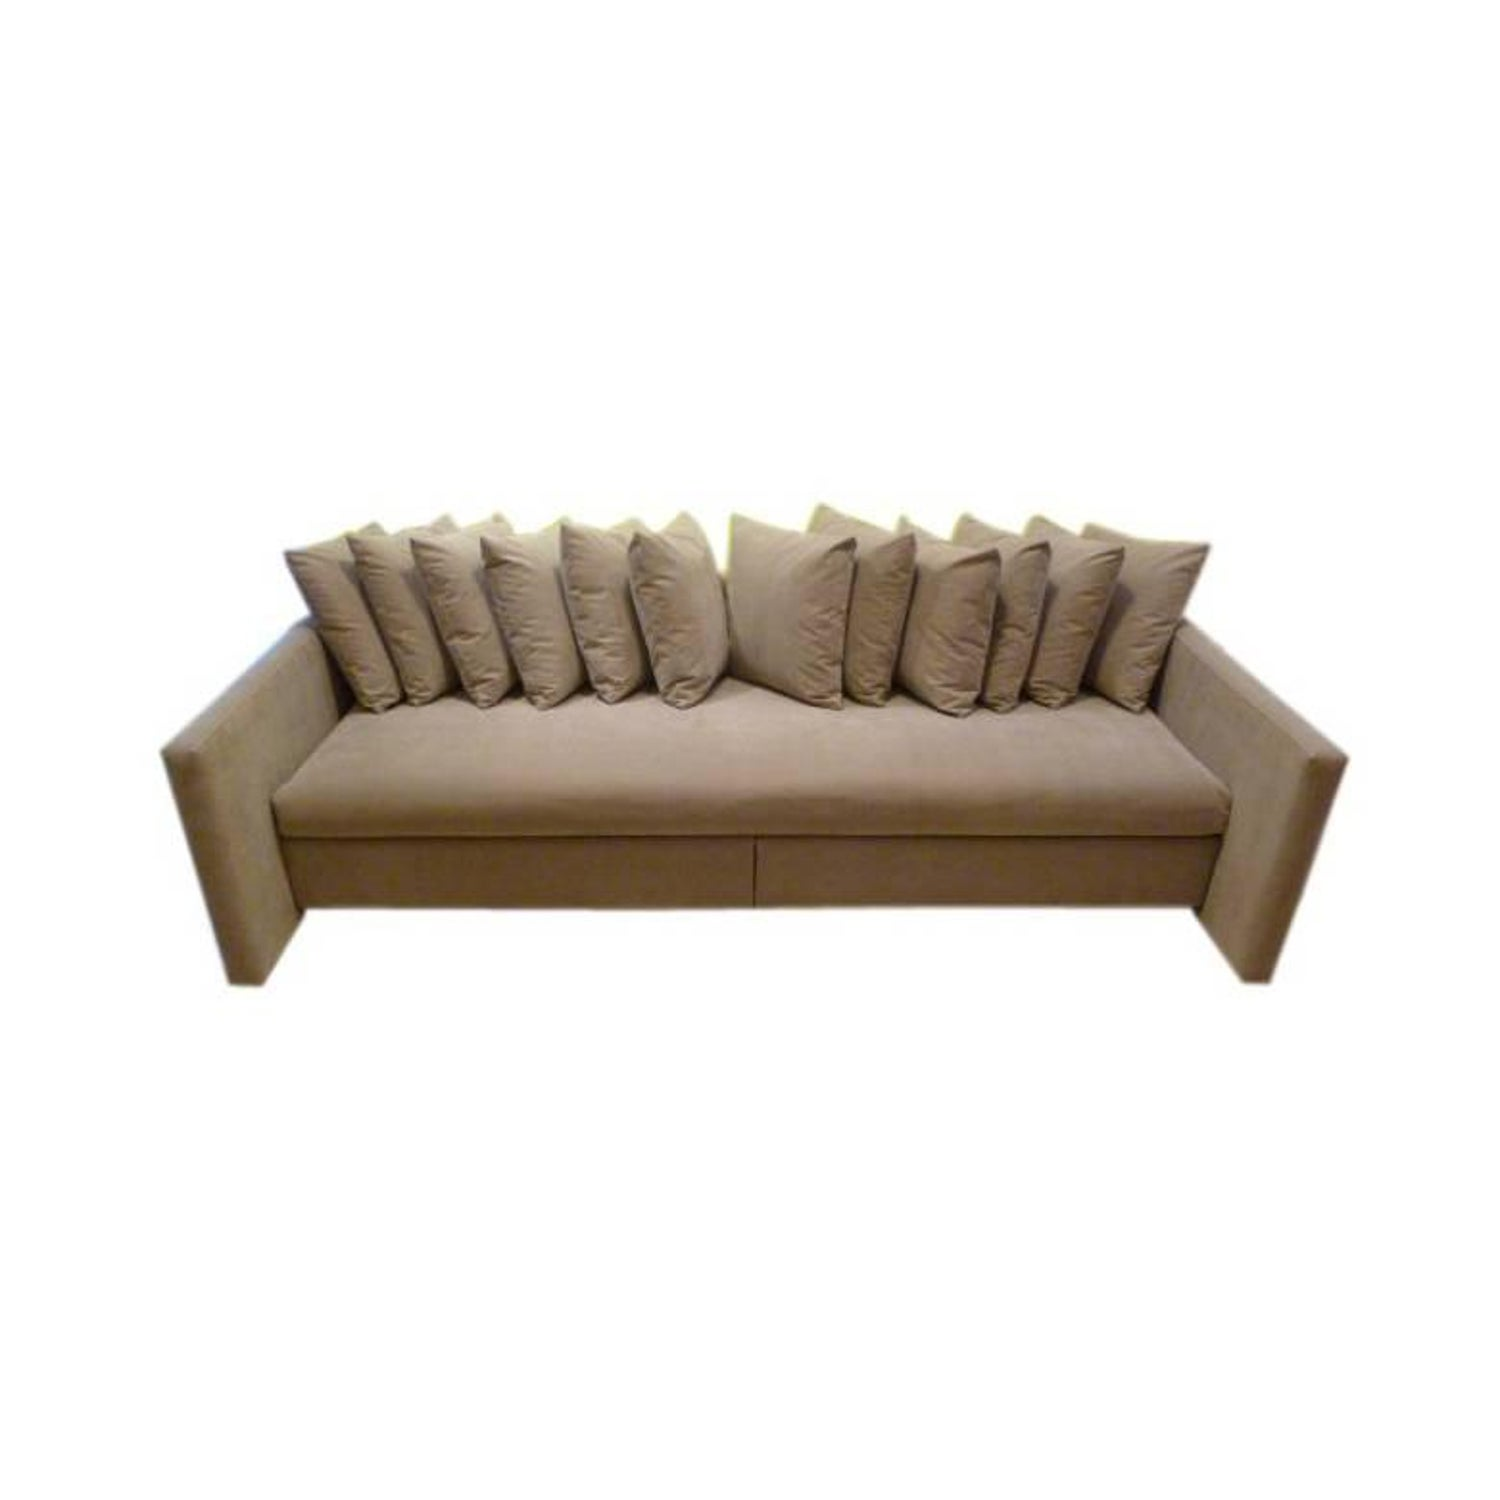 Knoll Furniture Chairs Sofas Tables & More 649 For Sale at